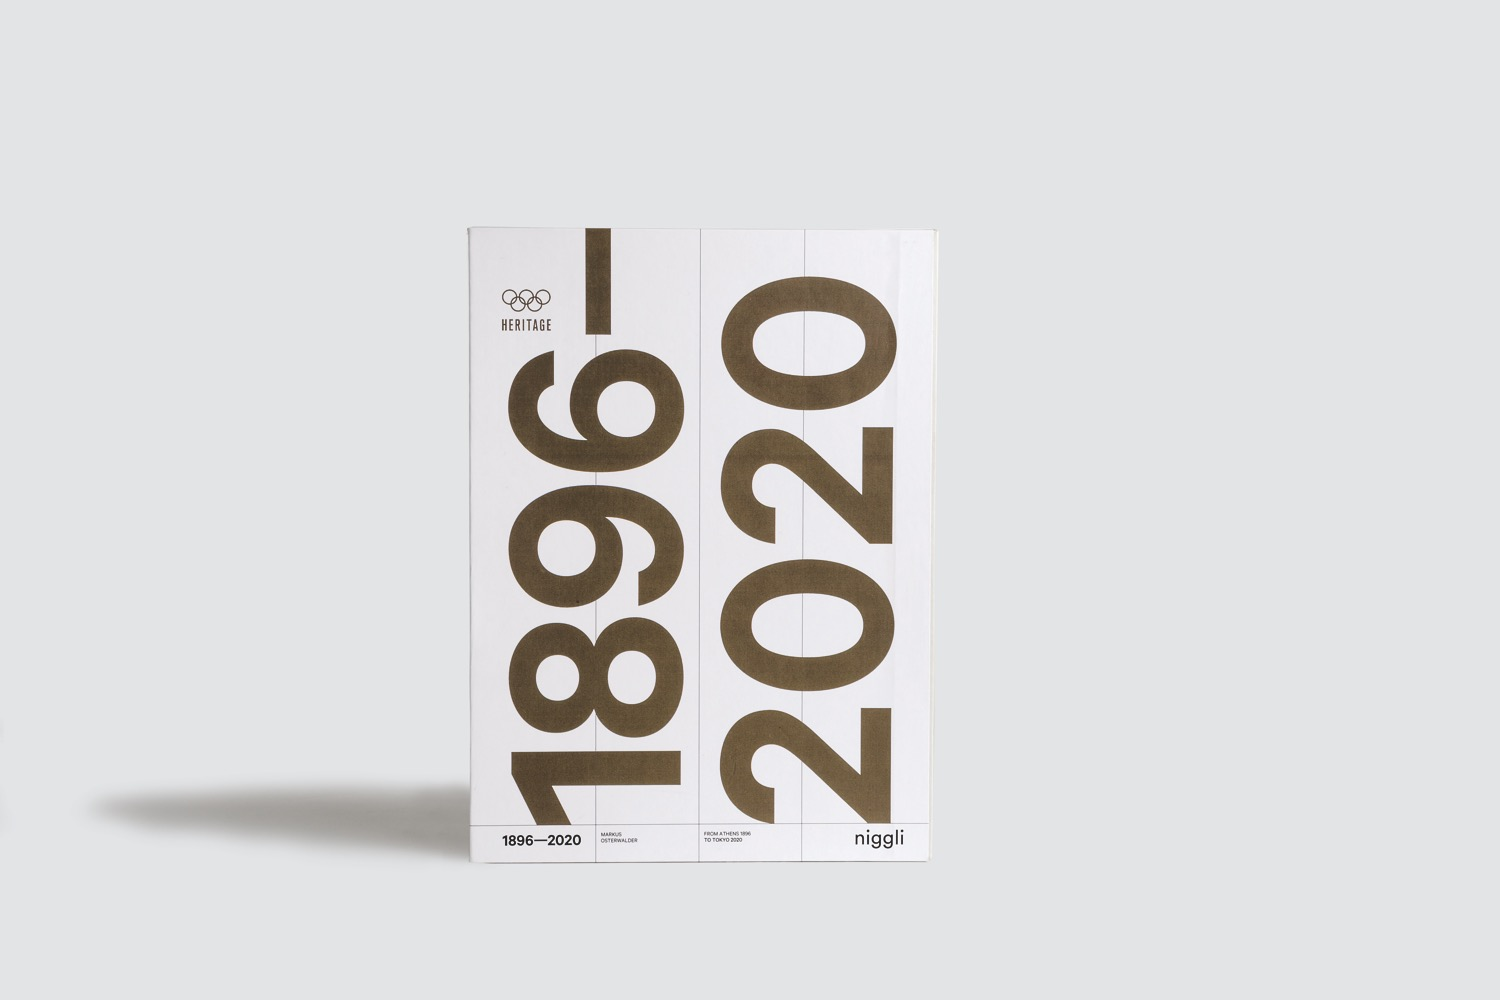 Olympic Games The Design  IER1490